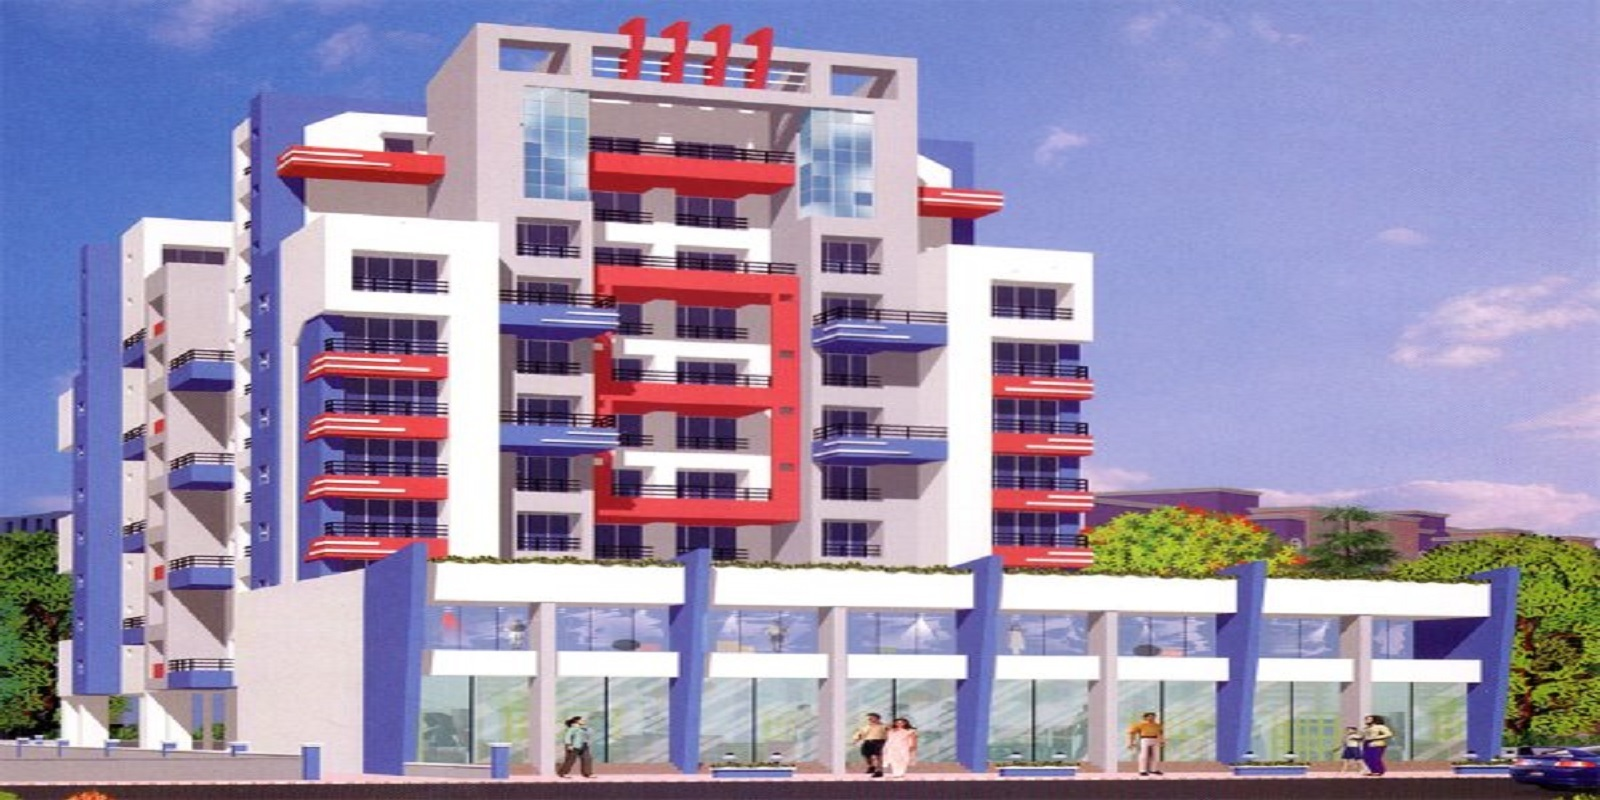 marvels shree tower project project large image1